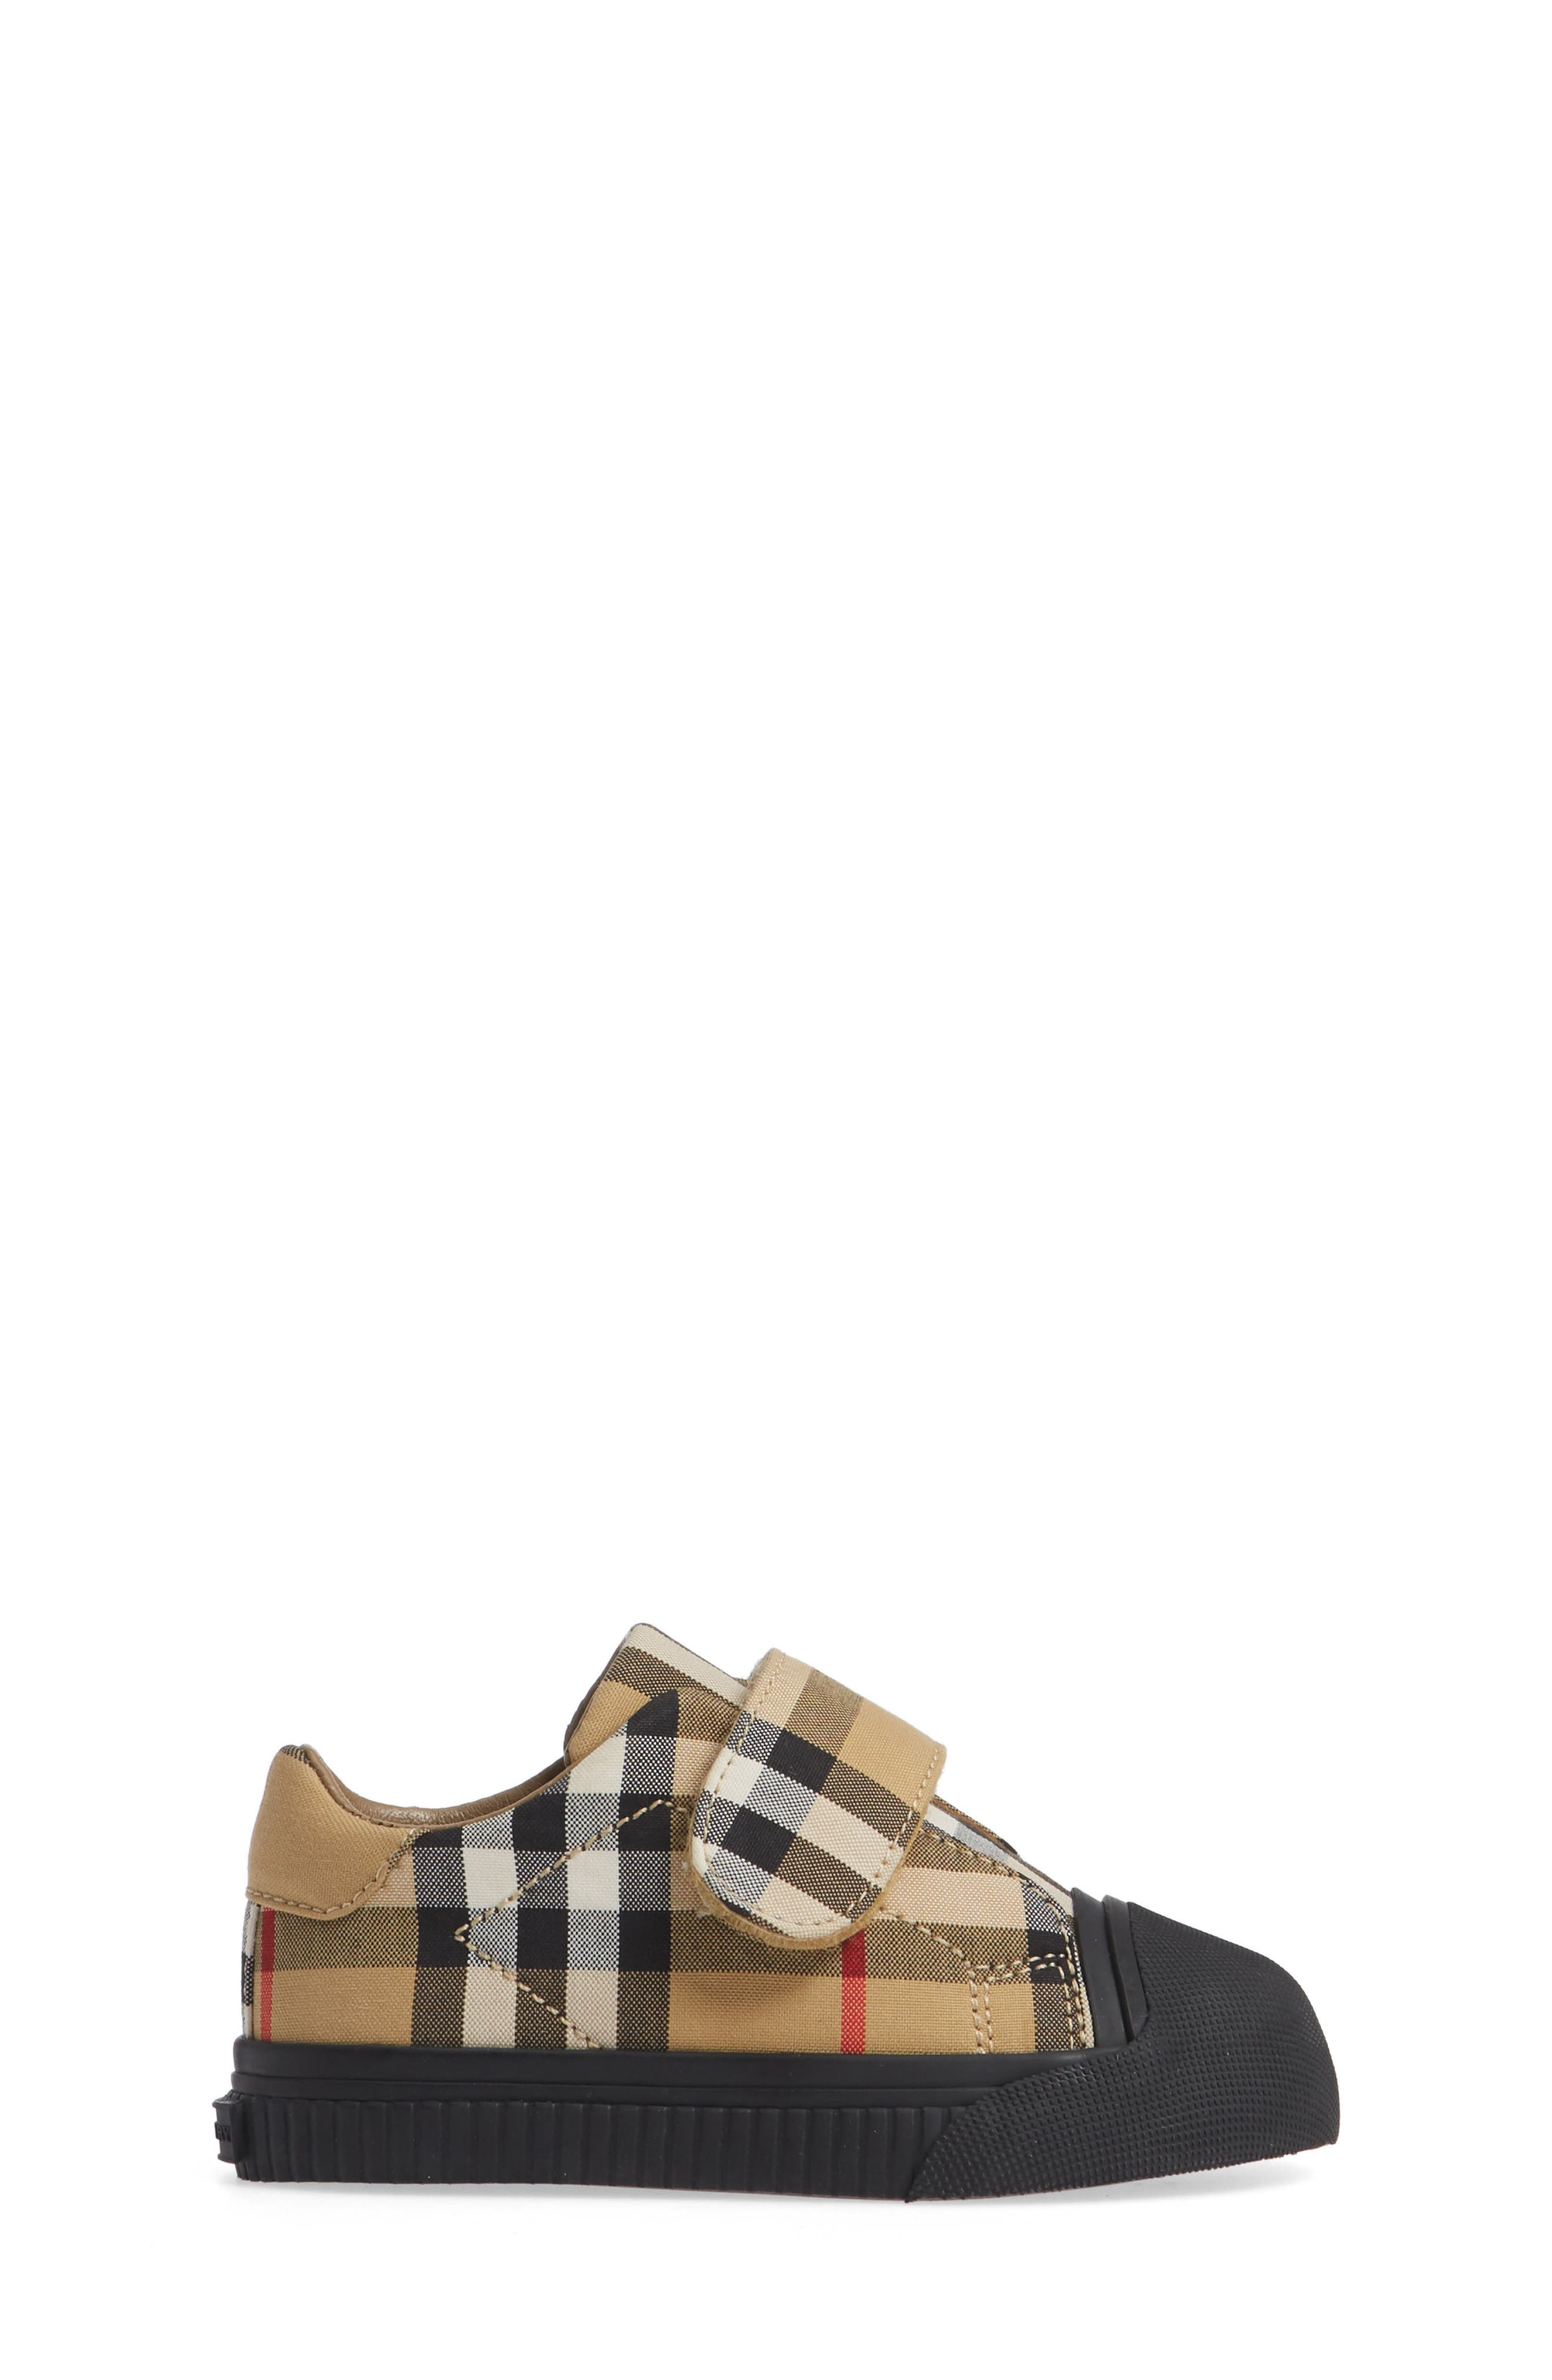 BURBERRY, Beech Check Sneaker, Alternate thumbnail 3, color, ANTIQUE YELLOW/ BLACK